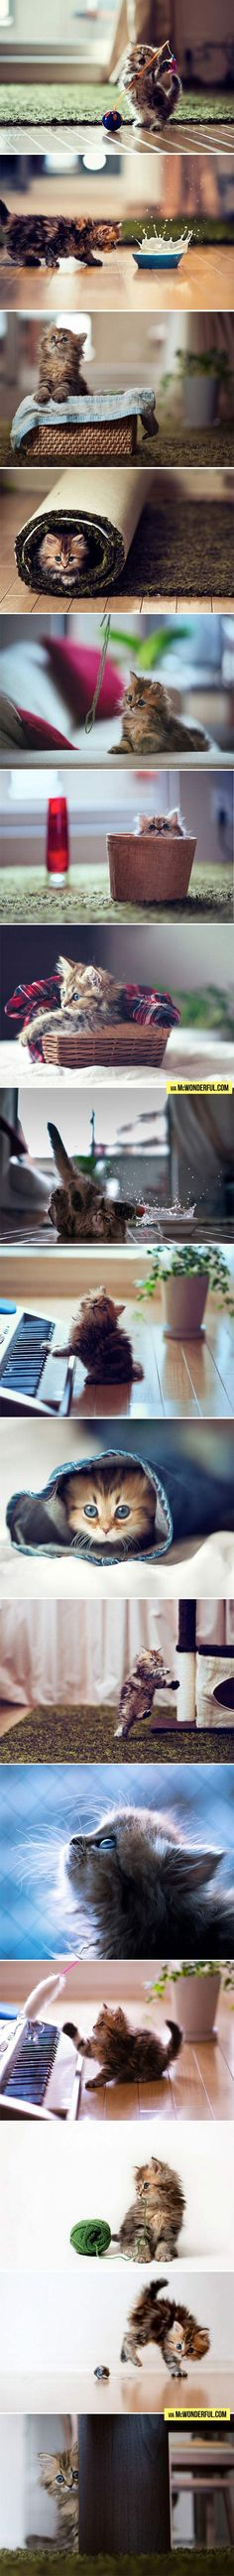 This is what will happened if cute cat met great photographer